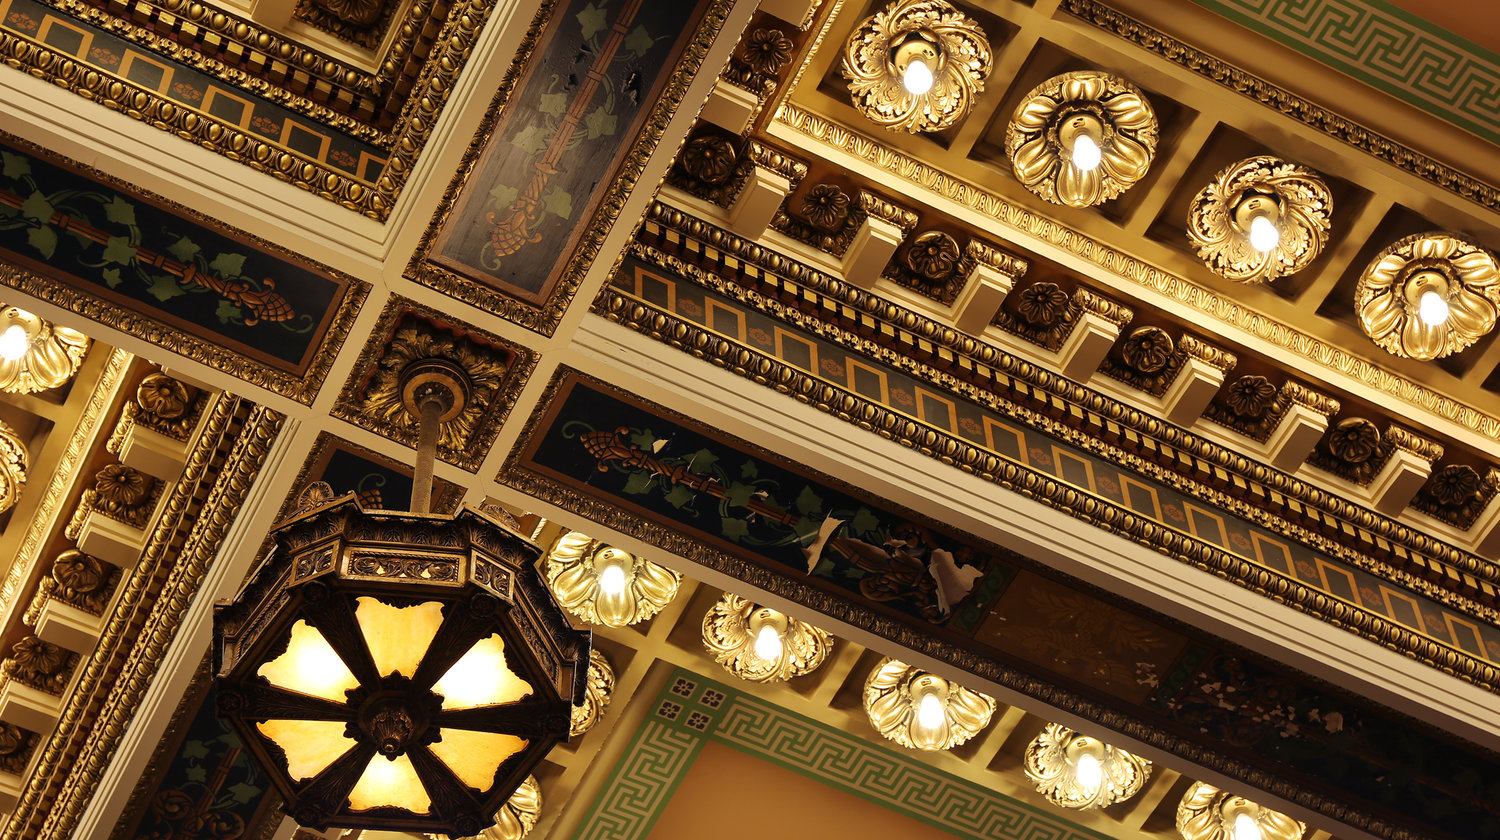 materials-conservation-philadelphia-city-council-chambers-ceiling-2.jpg